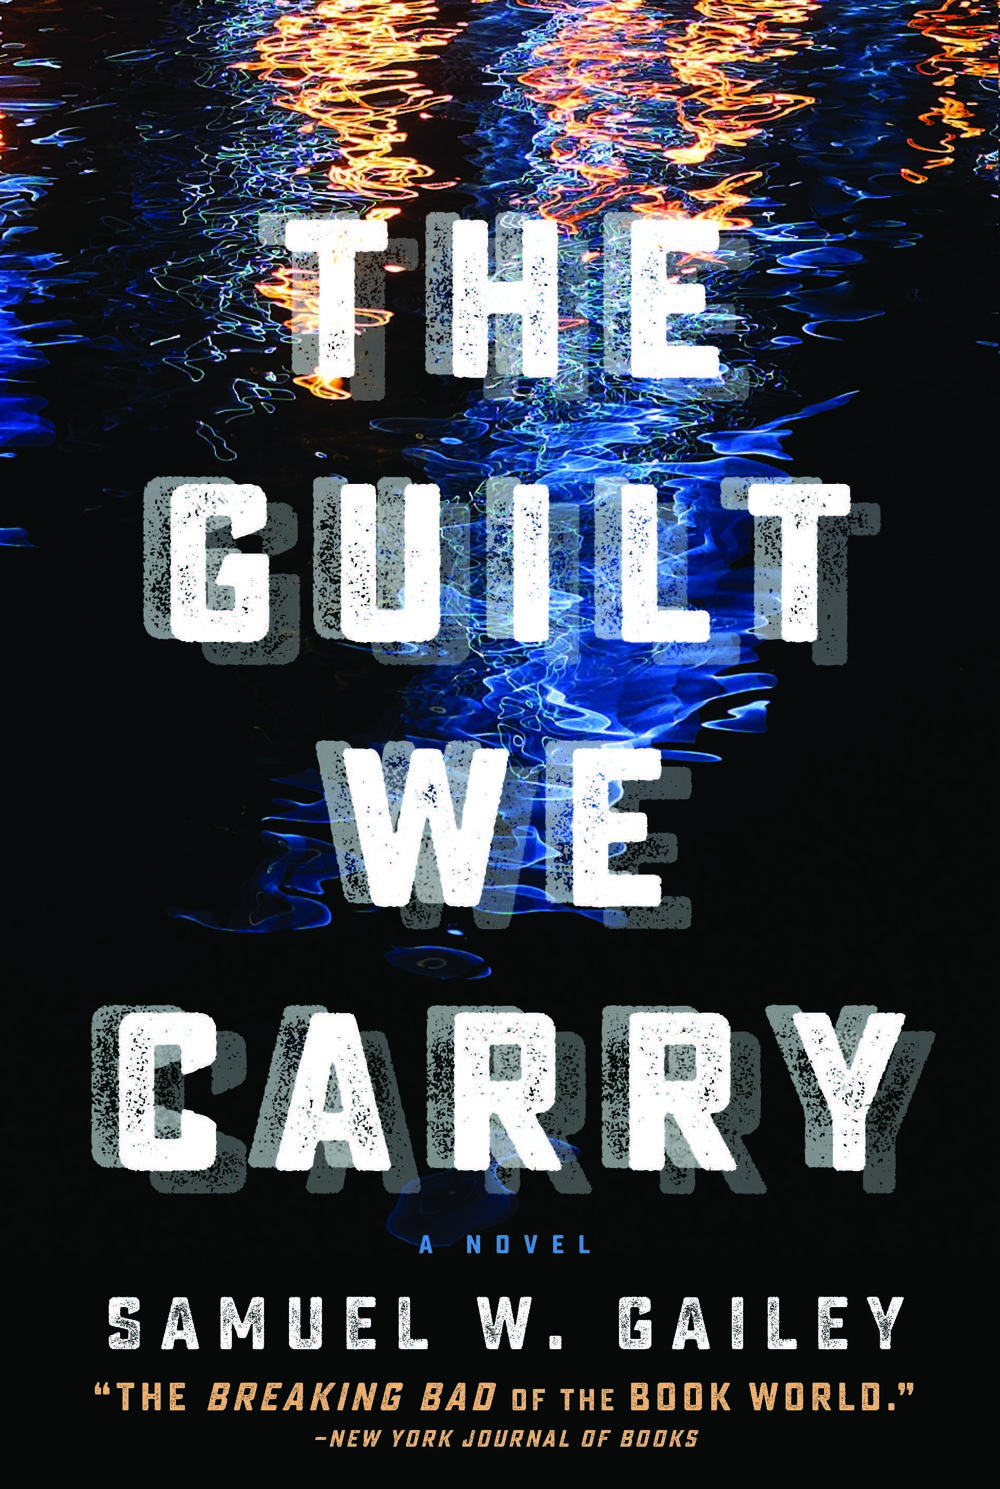 The Guilt We Carry Press Kit - Reviews, praise, synopsis, author bio, and more